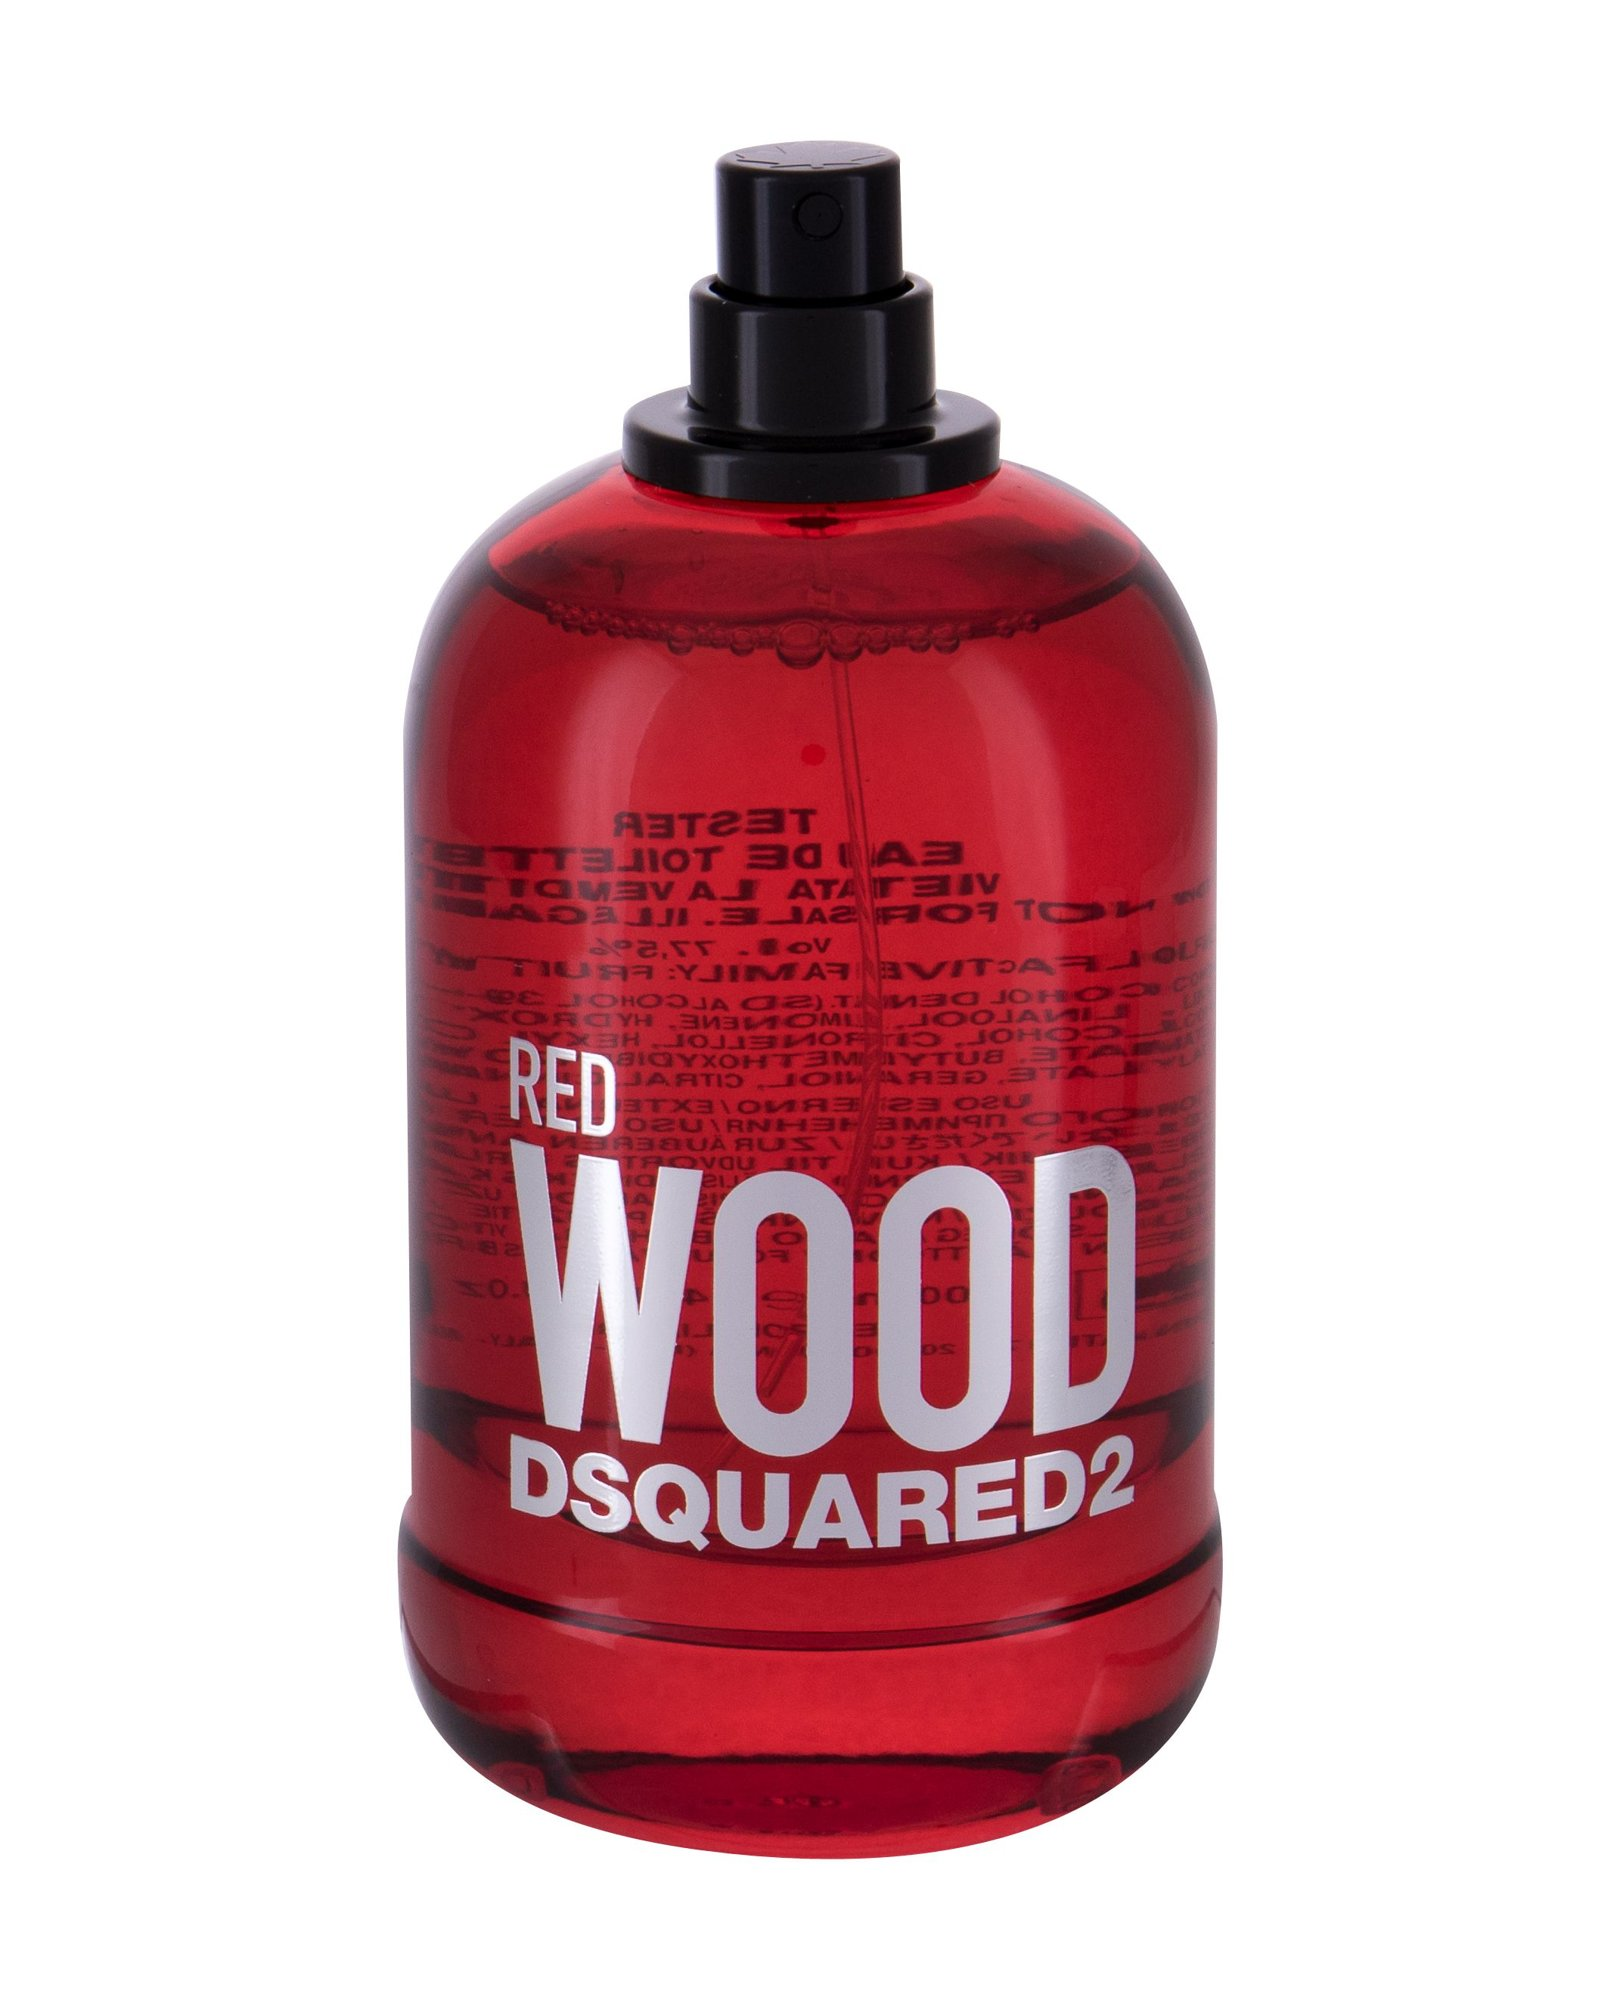 Dsquared2 Red Wood, vzorka vône